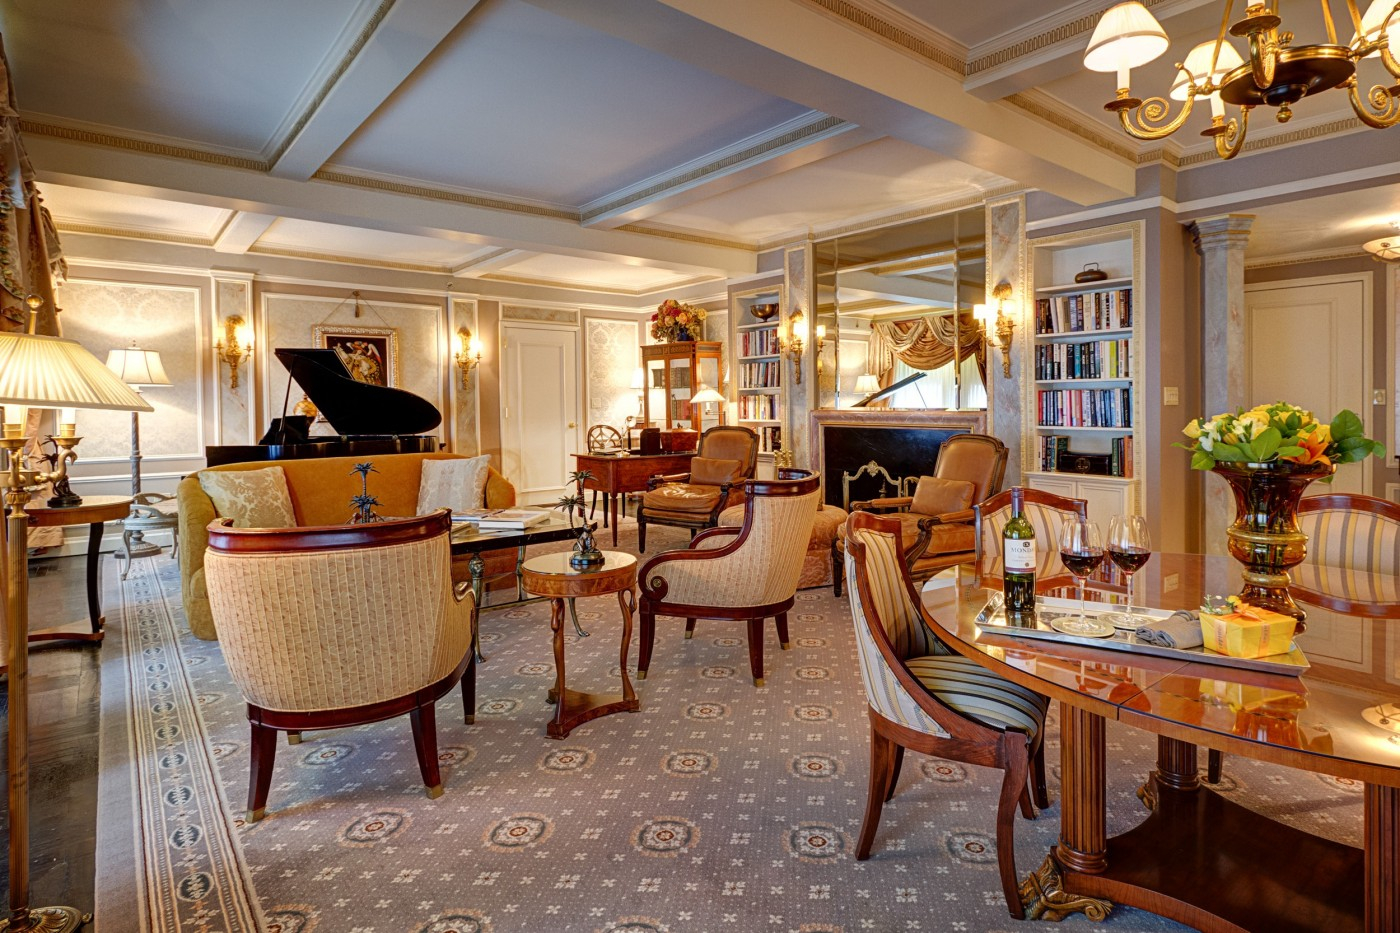 The Hotel Elysee Midtown Manhattan Luxury Boutique Hotel Rooms Nyc intended for measurements 1400 X 933